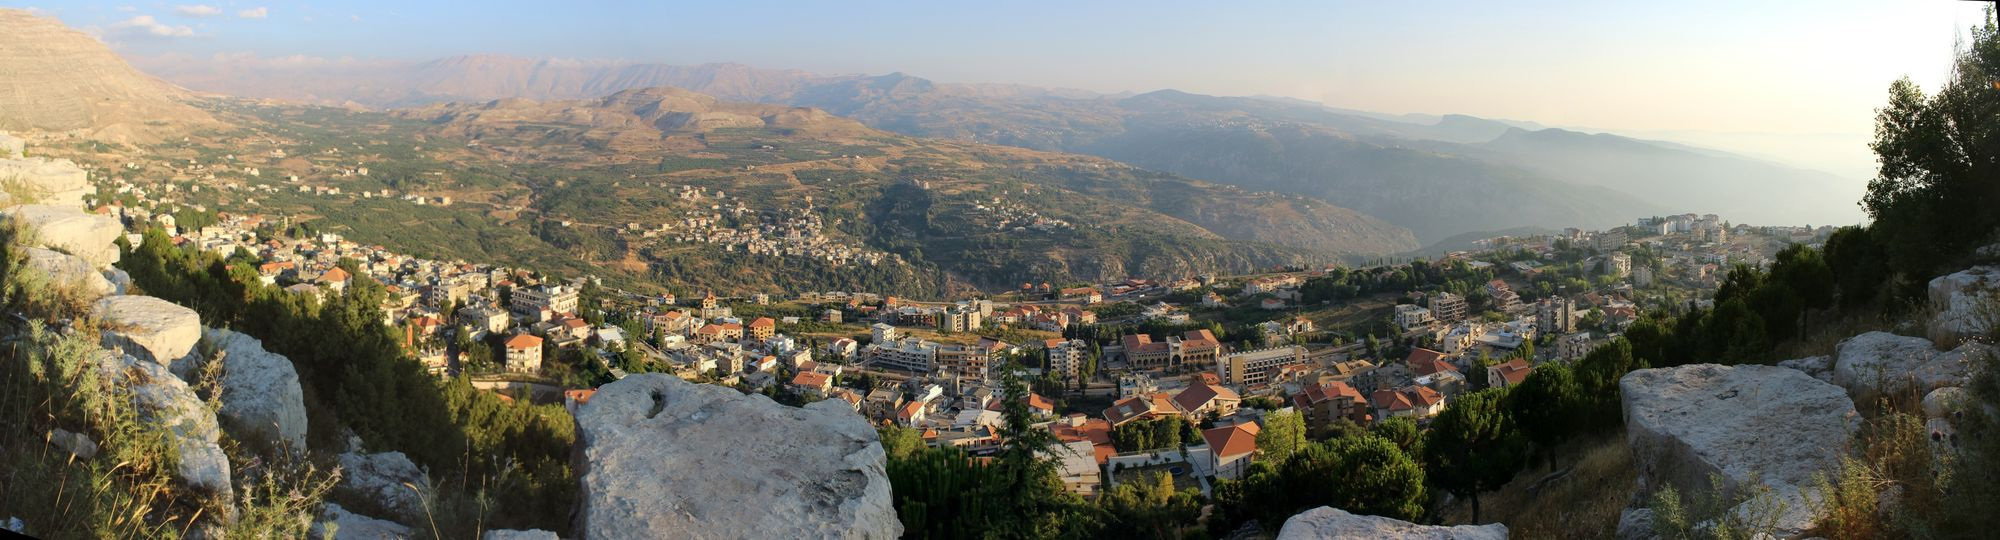 I just want to share this panoramic photo of ehden with you! Ehden Lebanon Northlebanon Panoramic SaydetLHosn-North Lebanon JDphotography LiveLoveLebanon Summer Lebanon  Ehden , Paradise On Earth JDPh